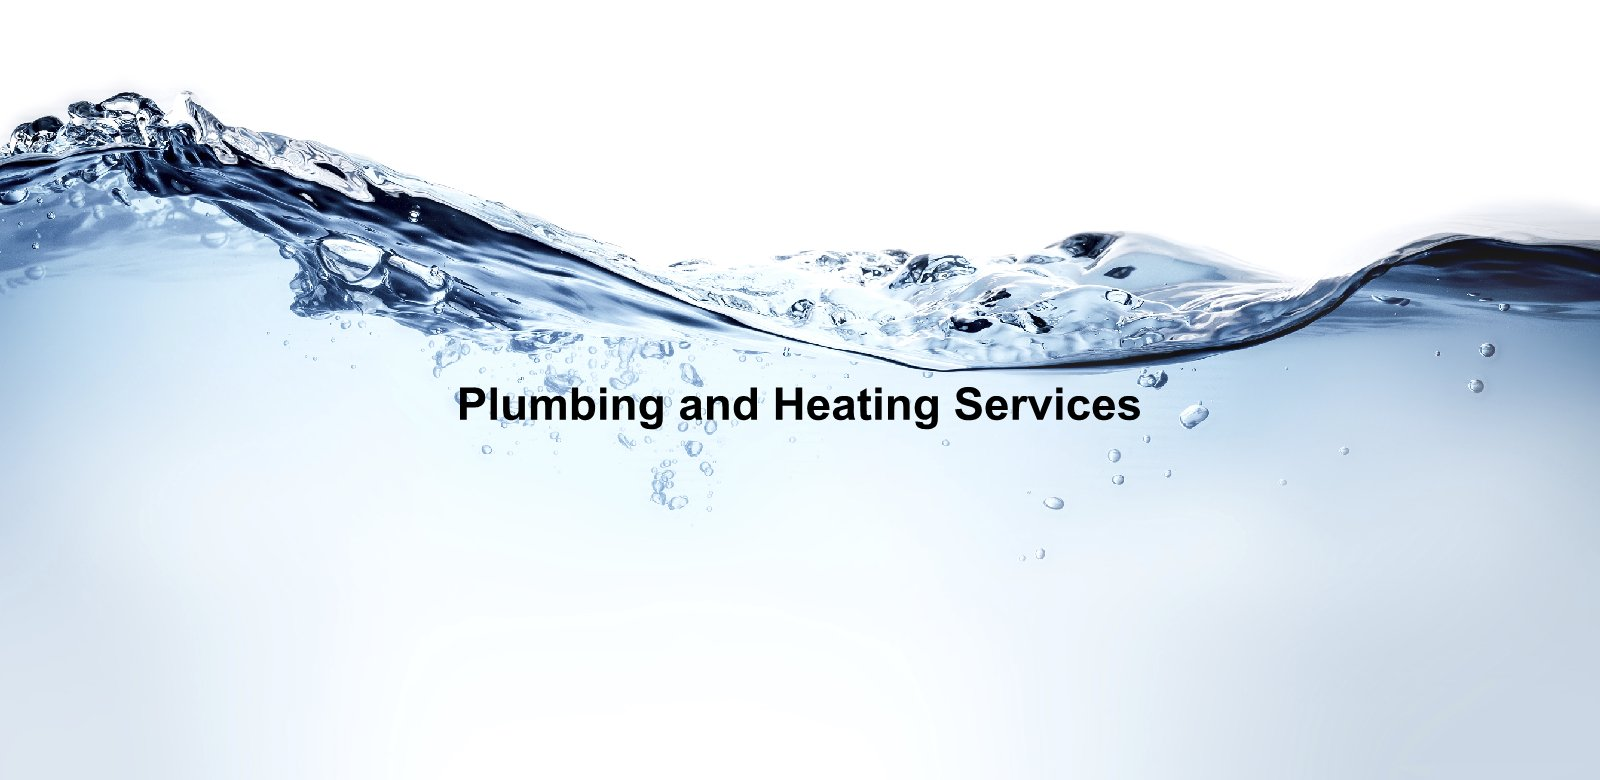 Blue Water   Plumbing And Heating Services